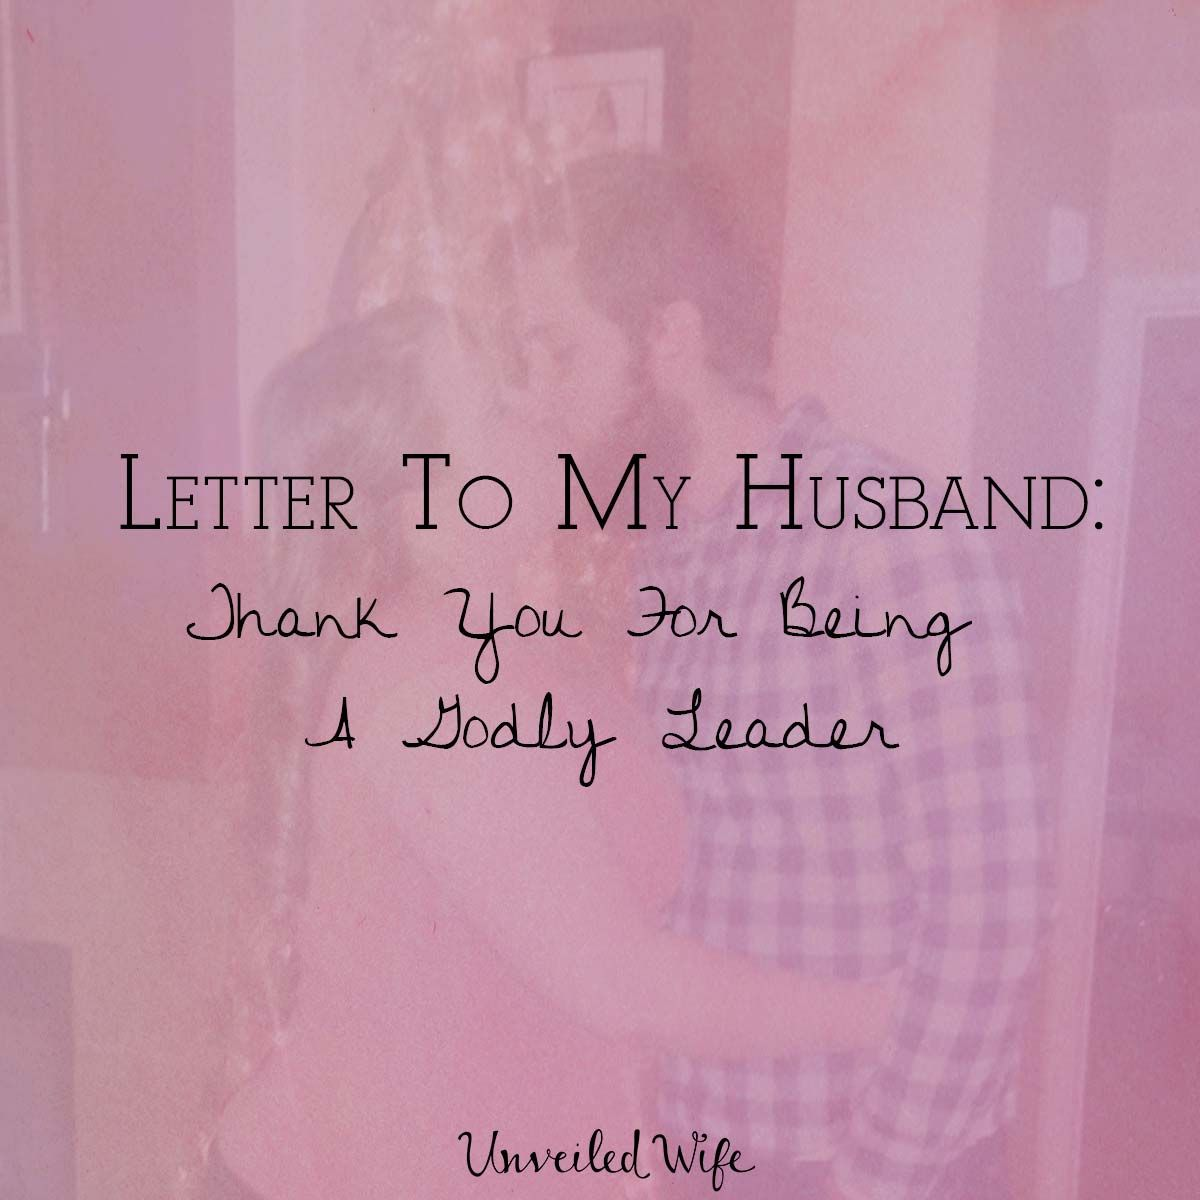 Letter To My Husband Thank You For Being A Godly Leader  Godly